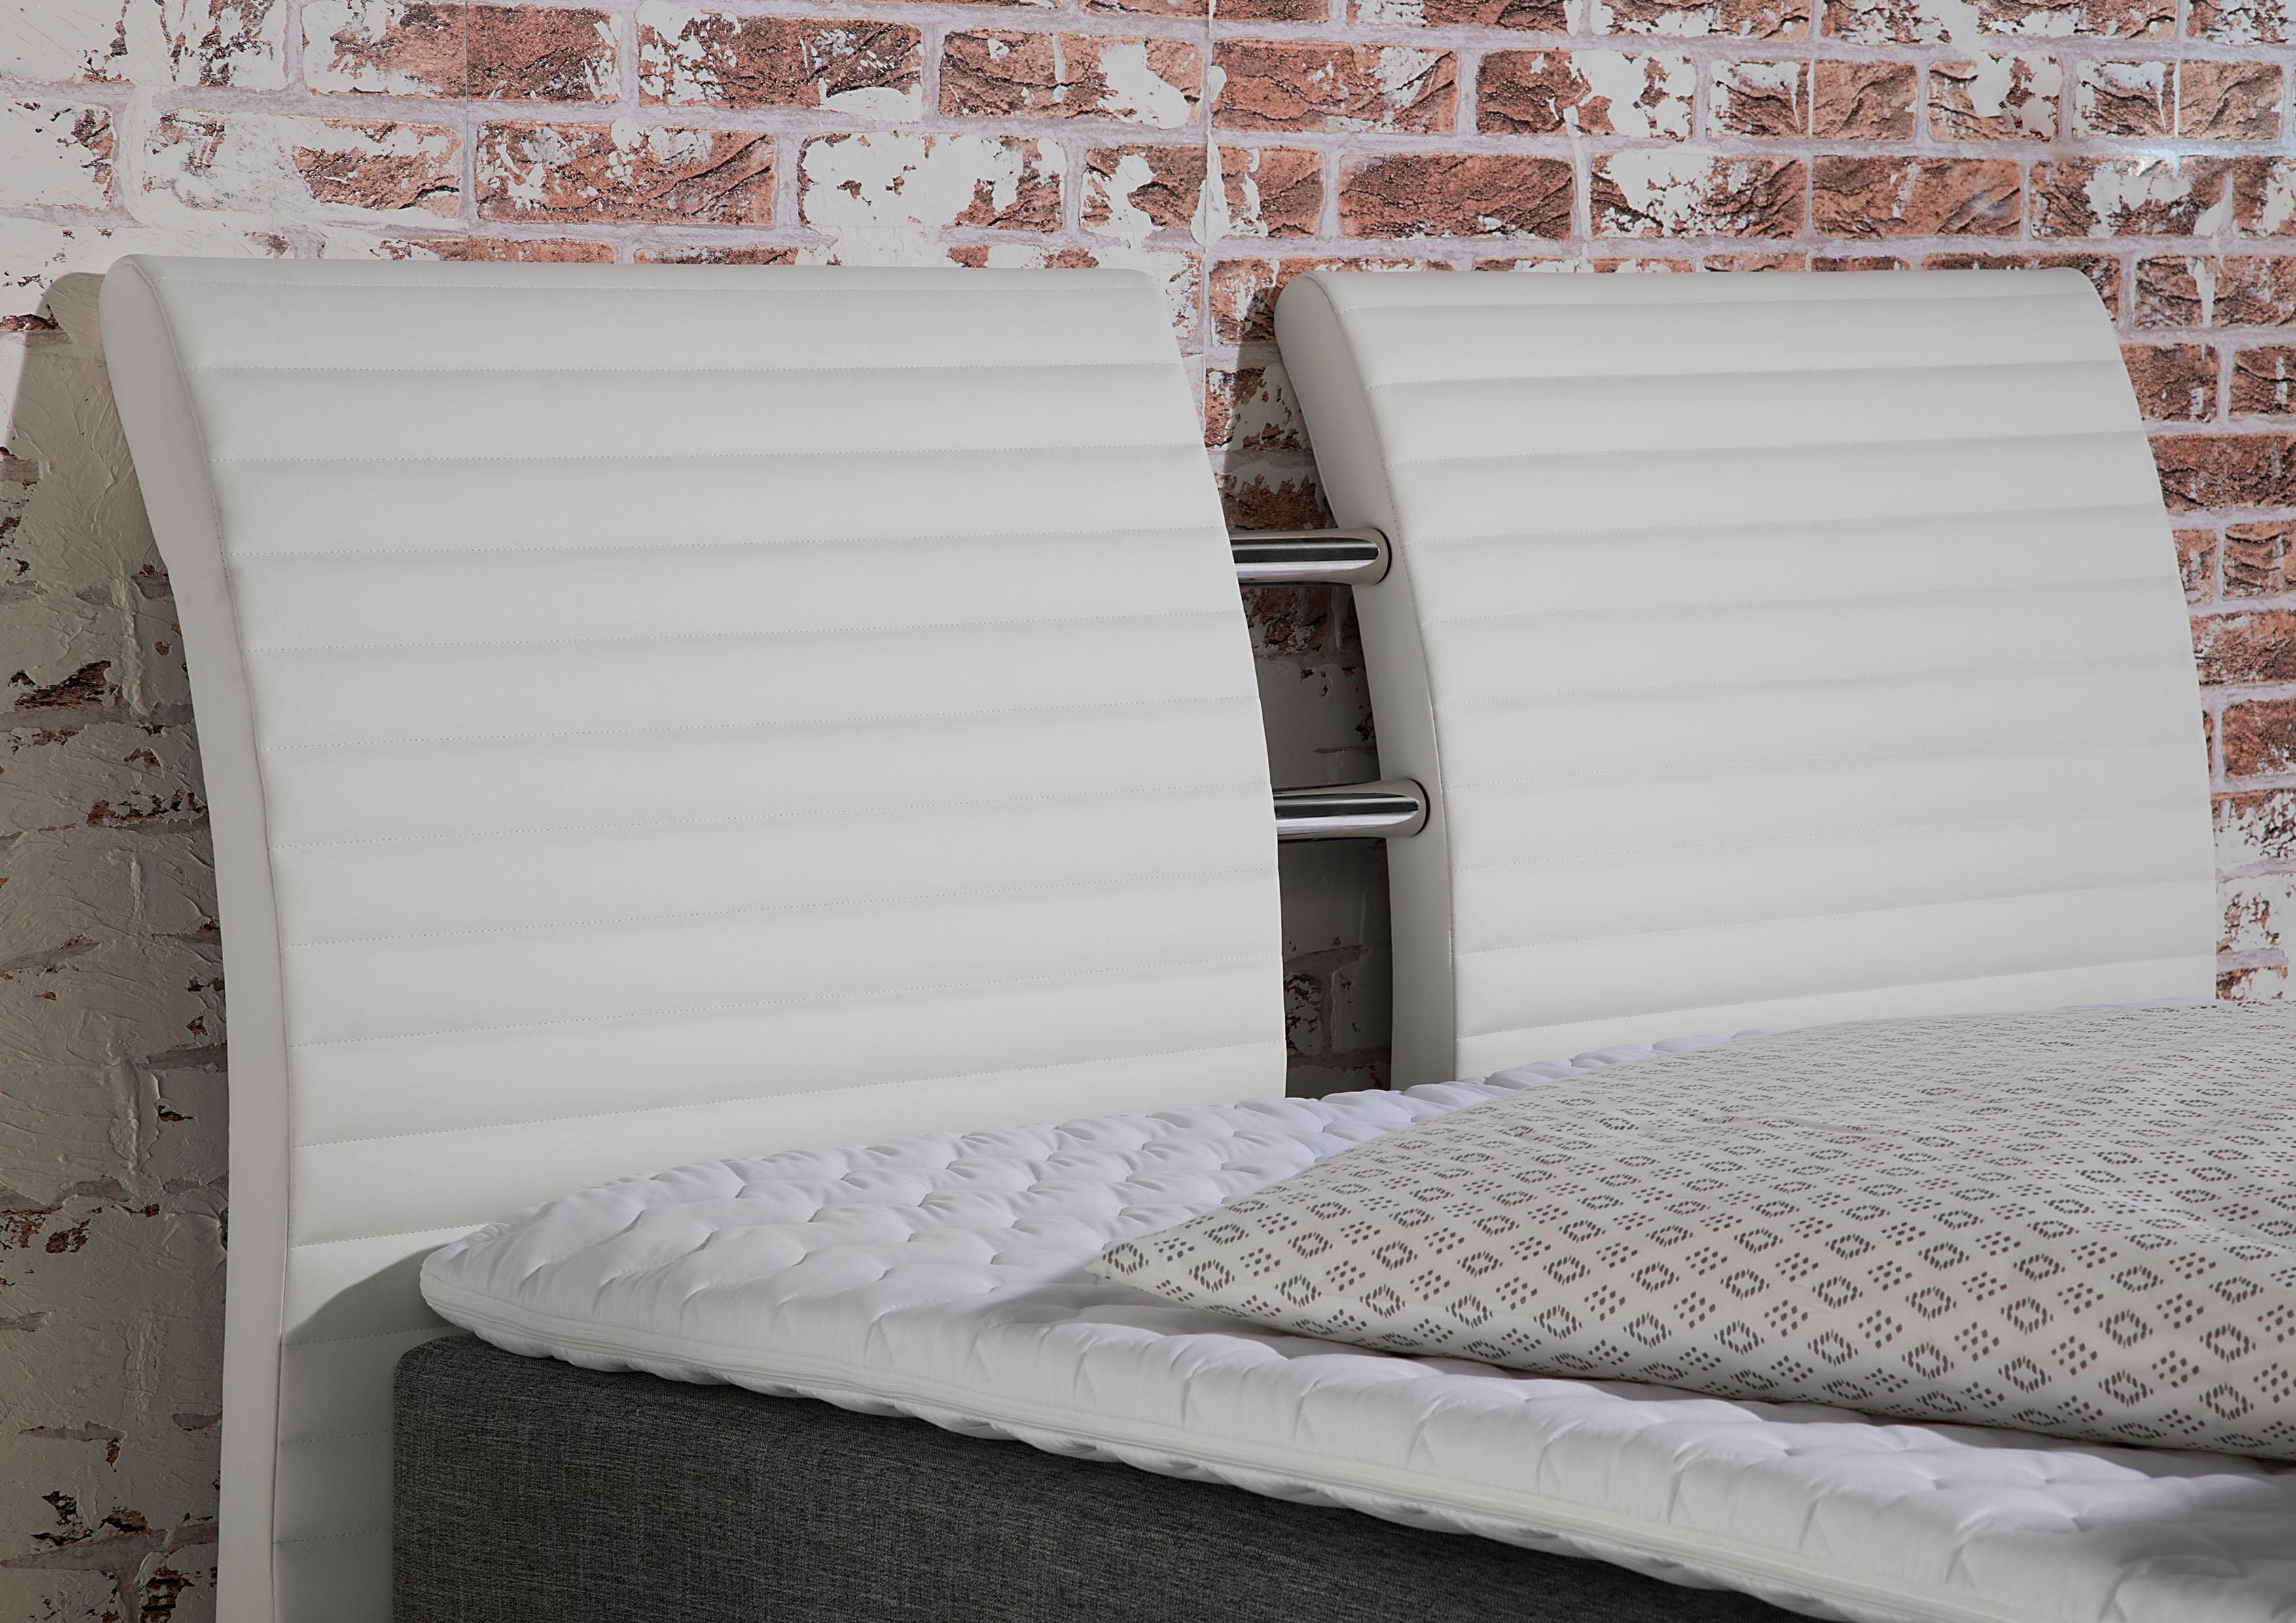 Maintal Boxspringbett inklusive Topper